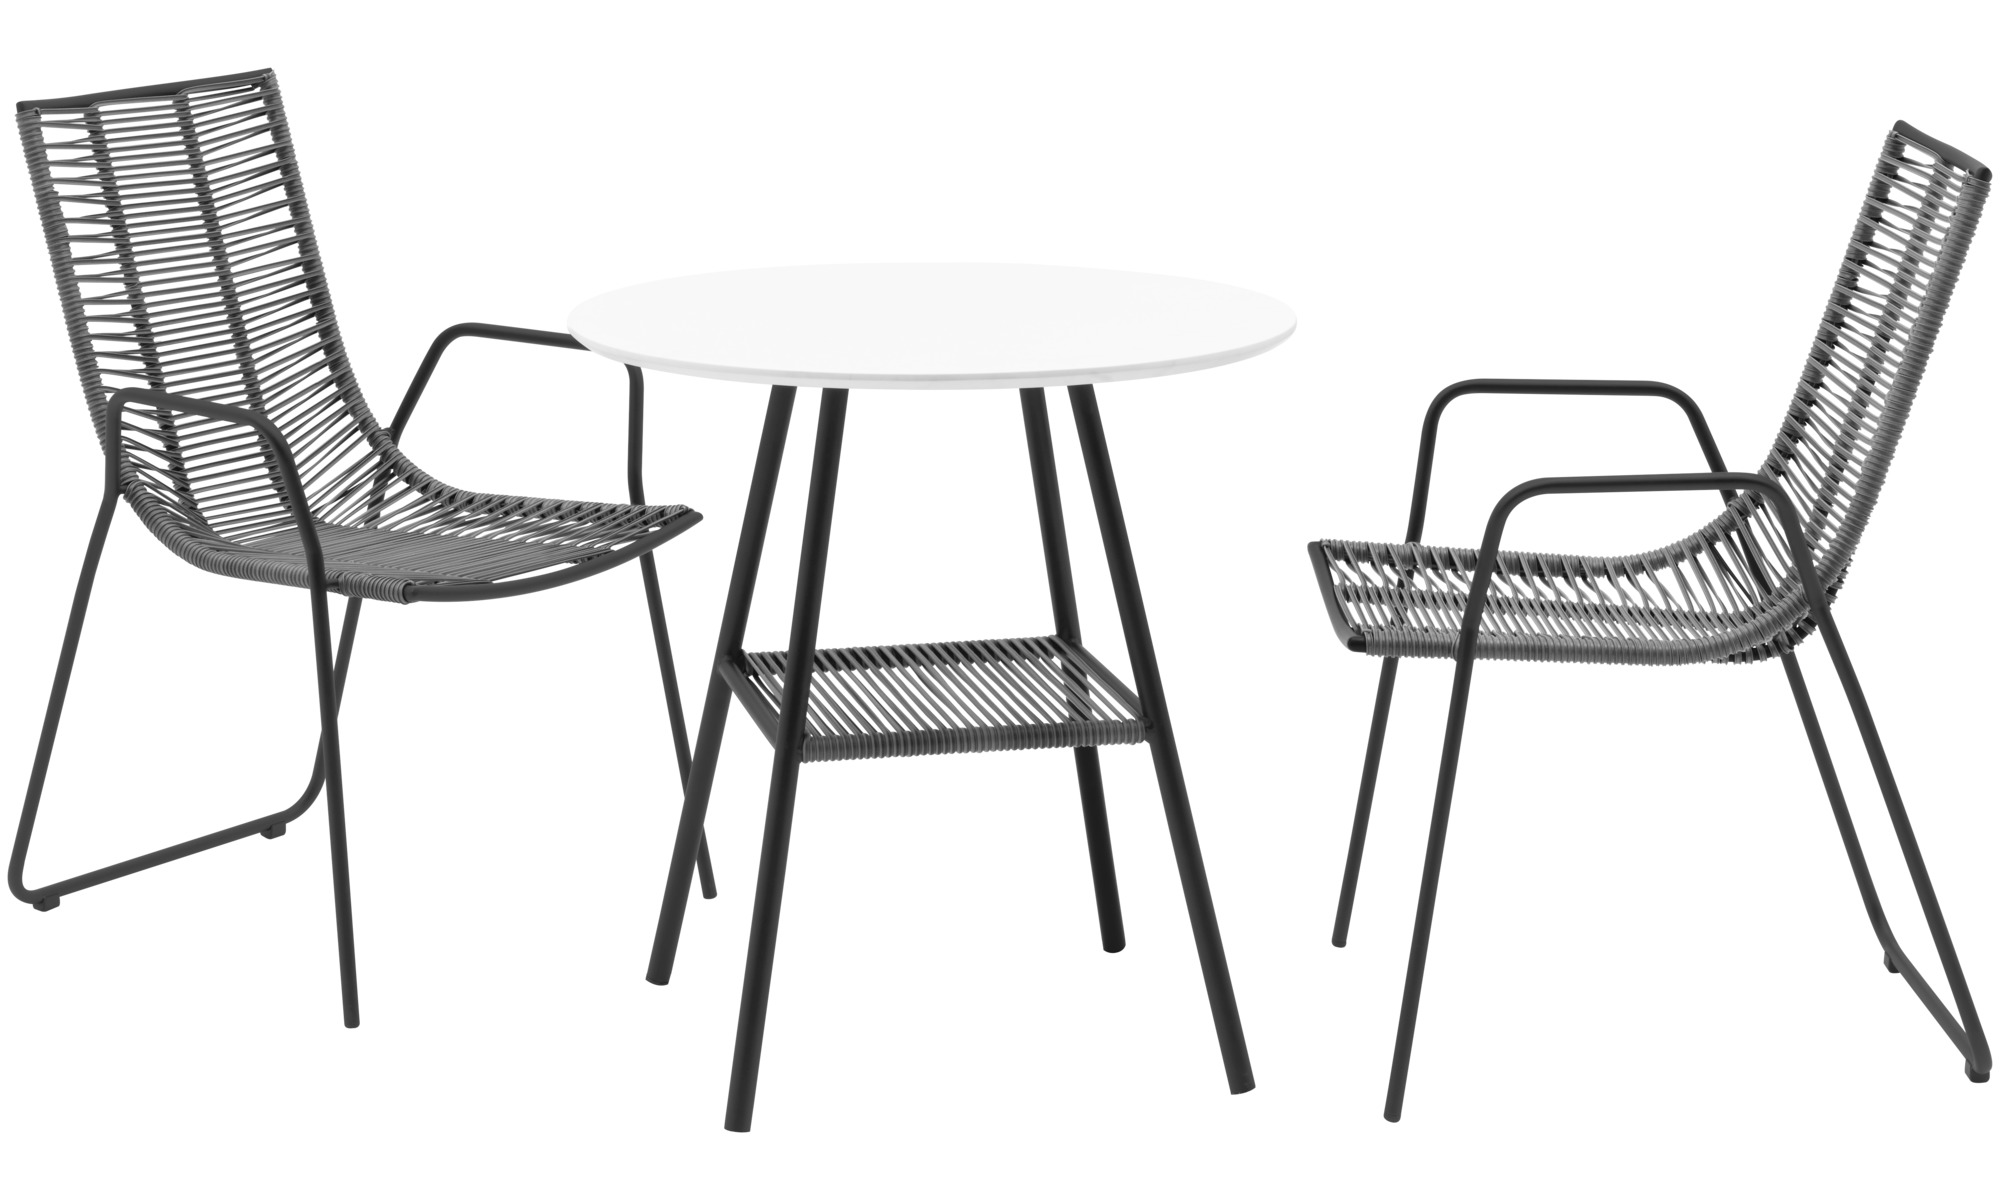 Outdoor tables Elba table for in and outdoor use BoConcept